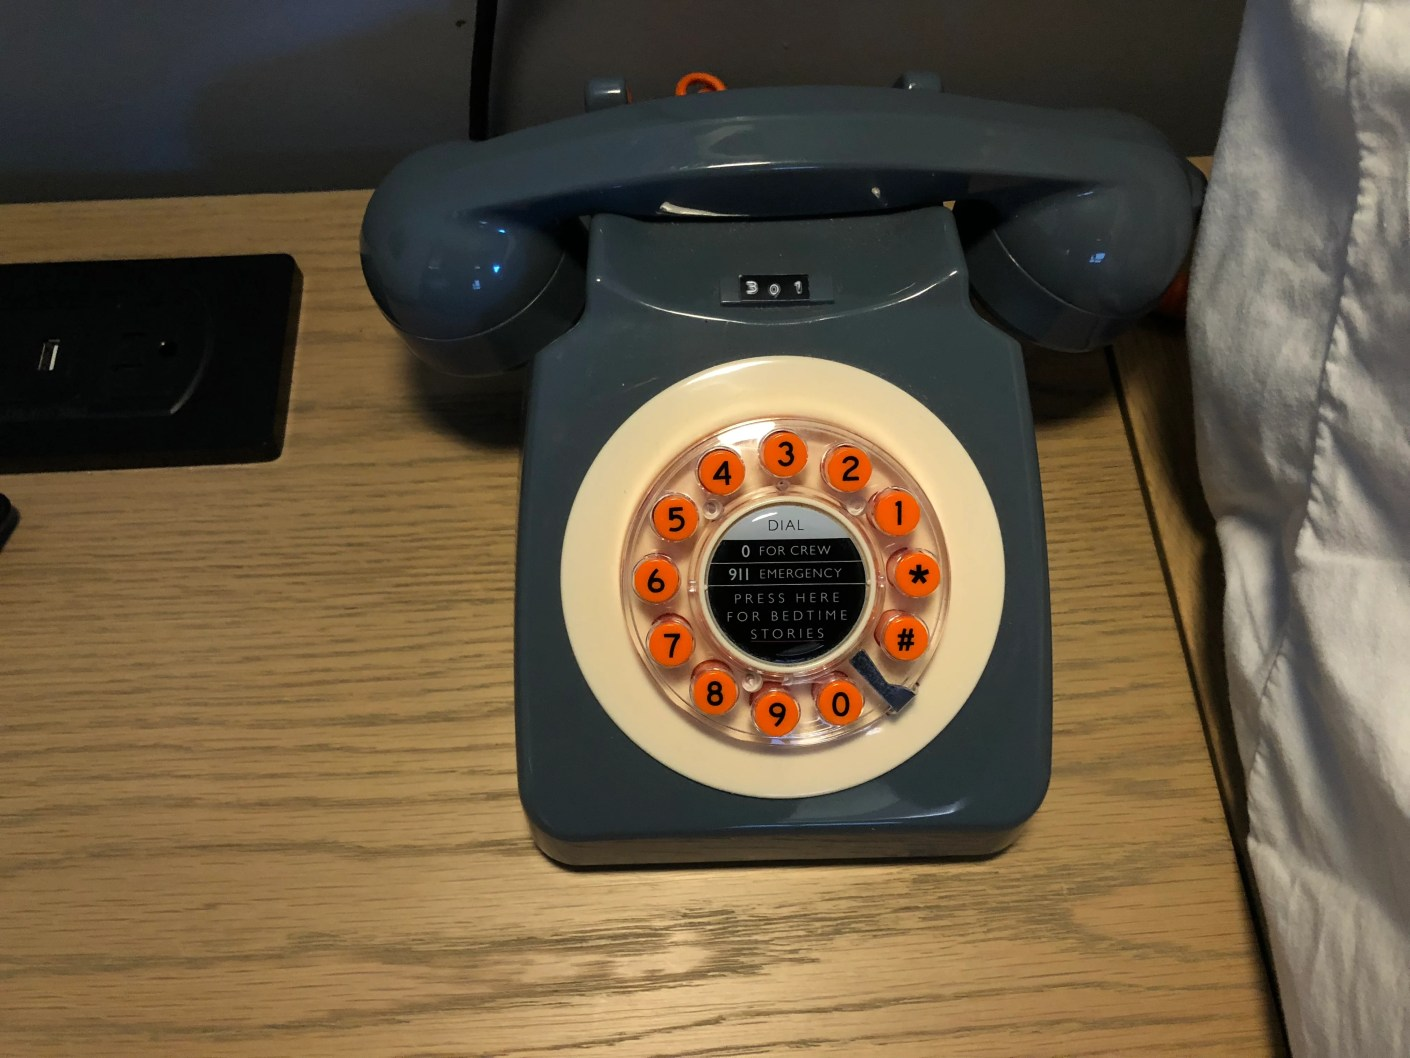 A retro in-room phone at the Moxy Hotel Seattle